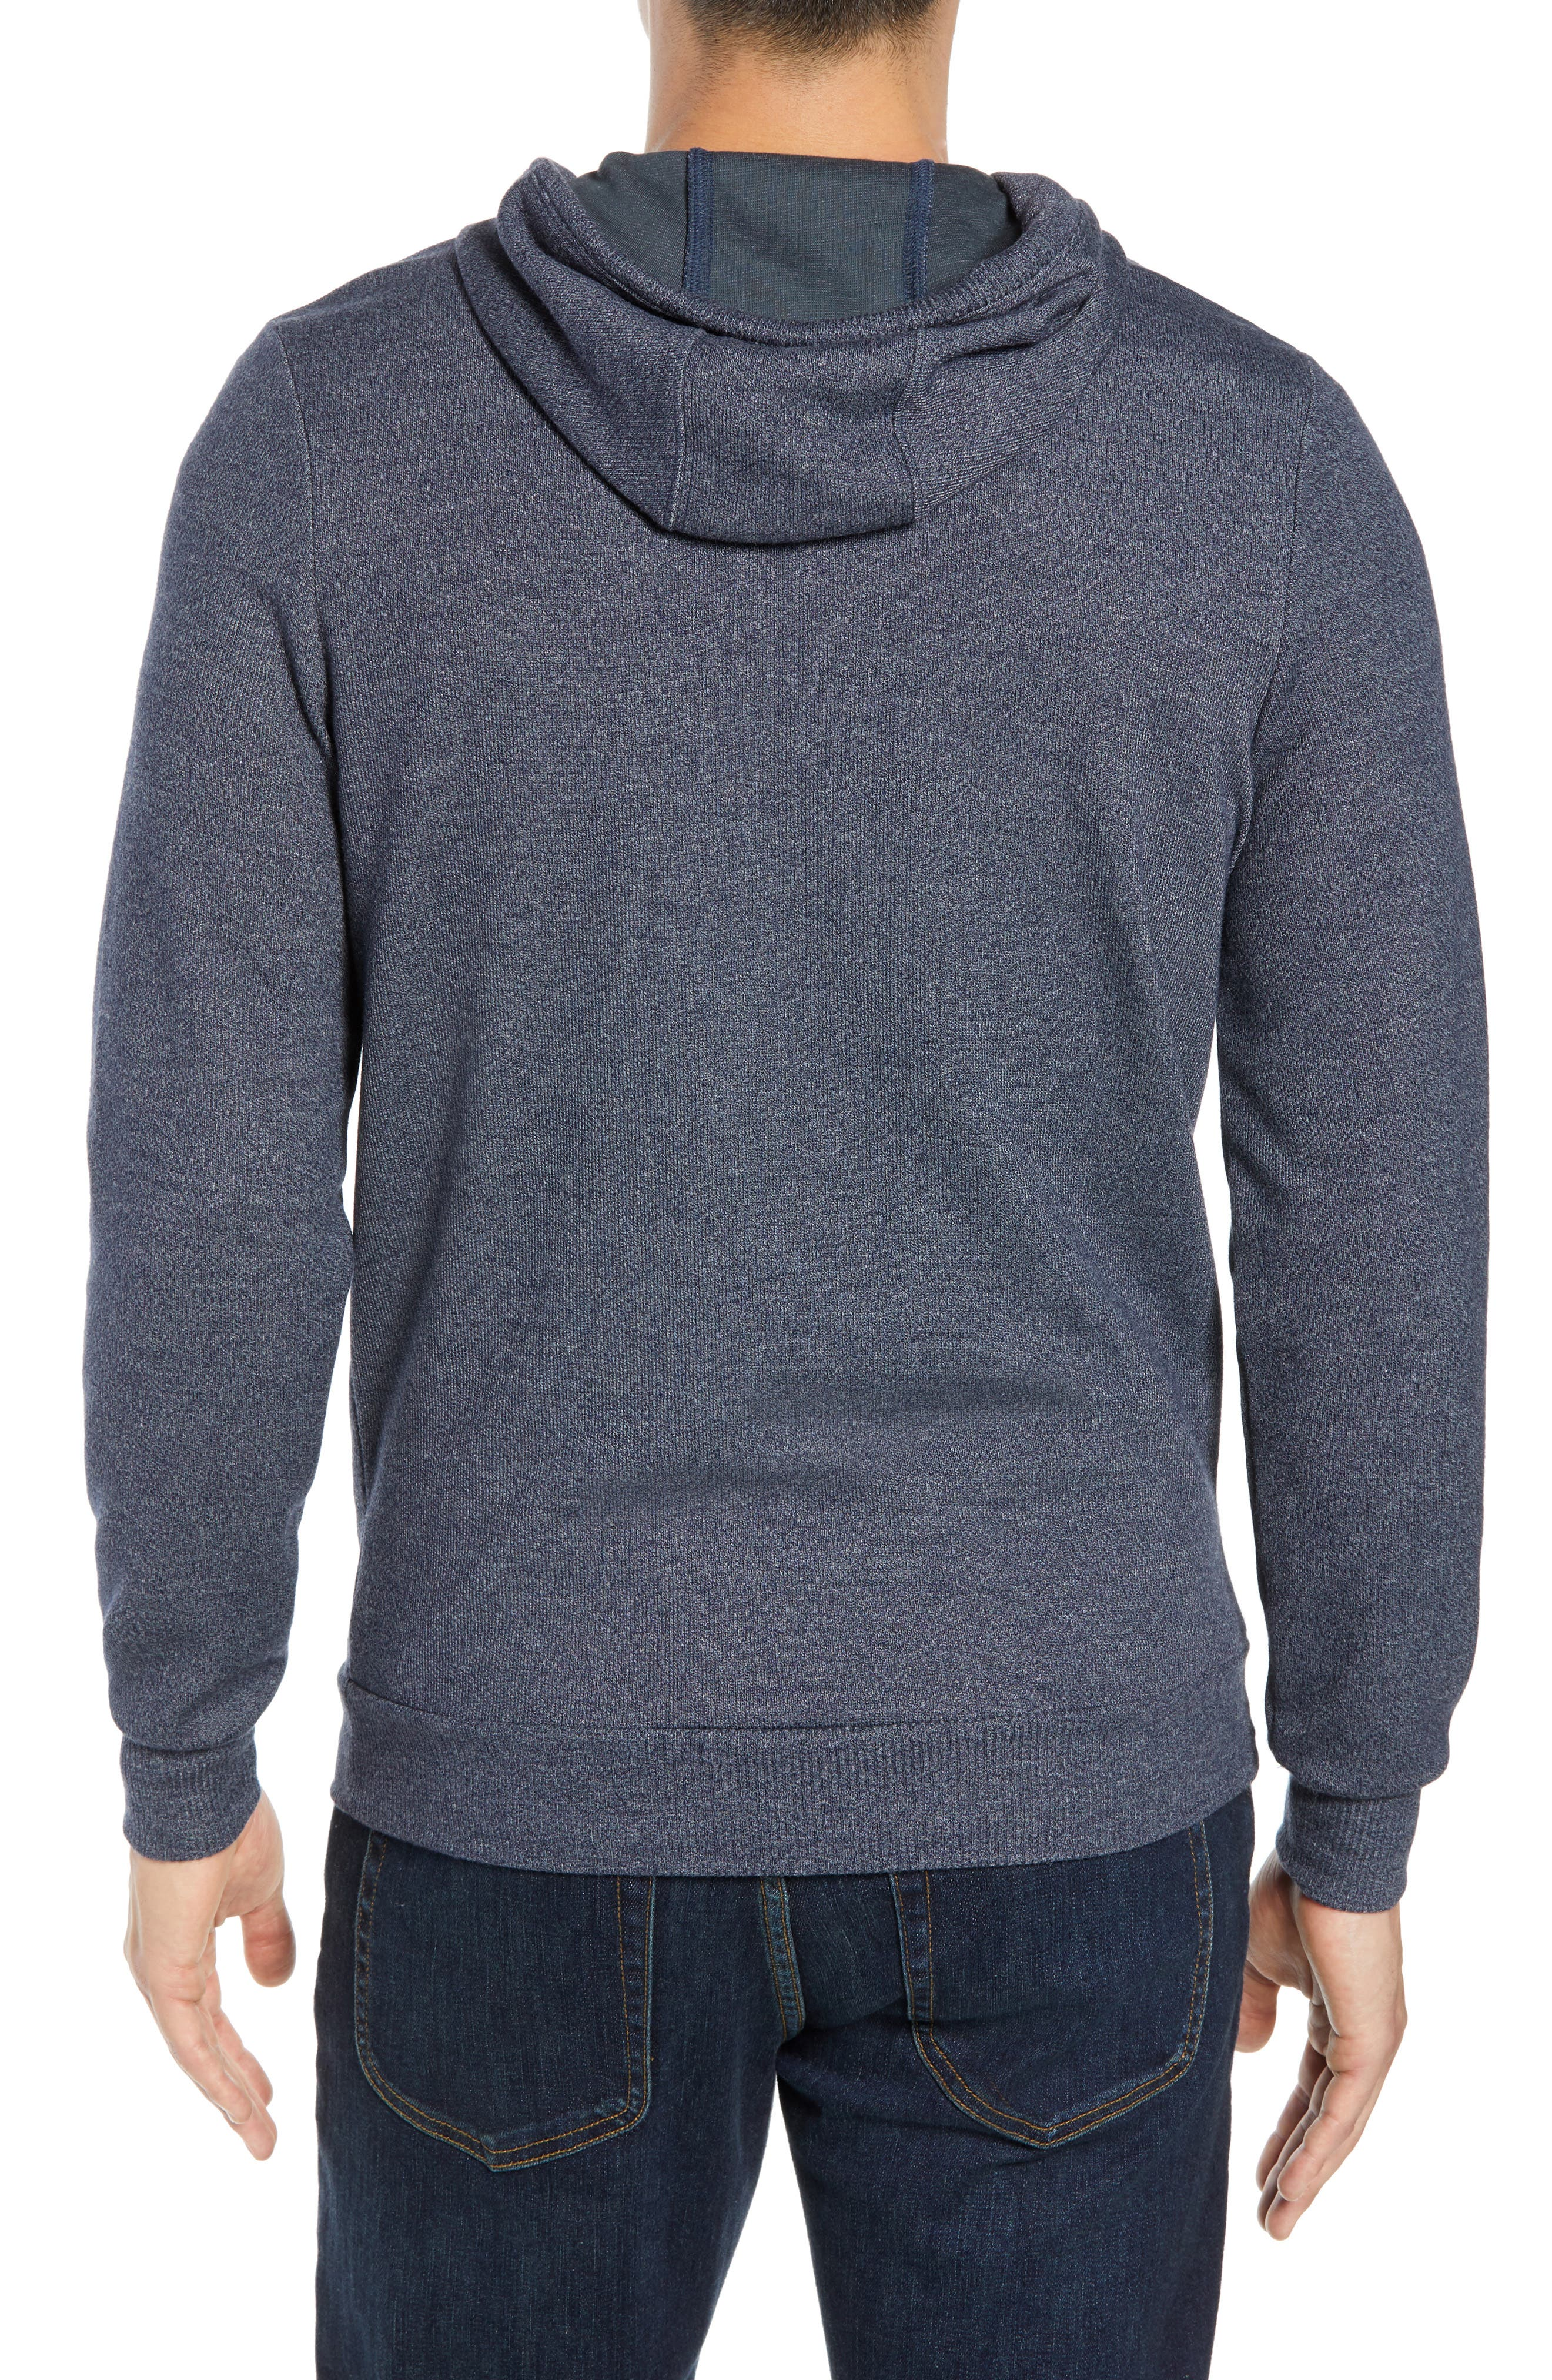 TRAVIS MATHEW,                             Snare Zip Front Hooded Cardigan,                             Alternate thumbnail 2, color,                             400